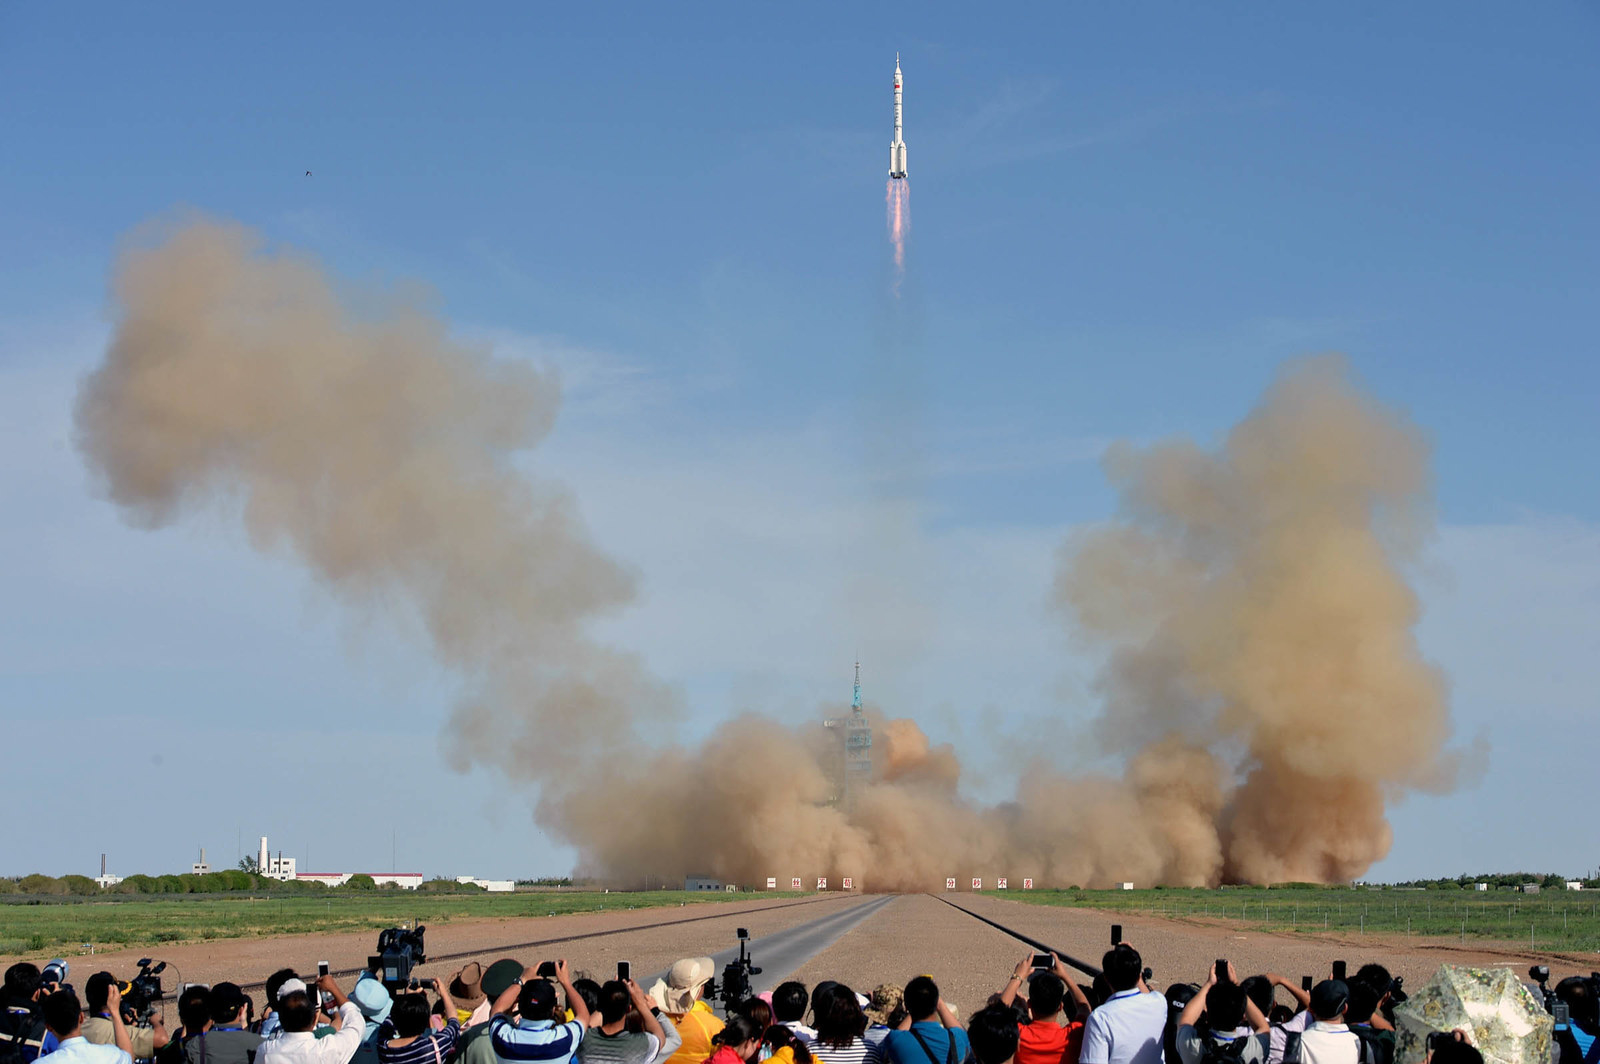 2013 The Long March 2F rocket carrying China's manned Shenzhou-10 spacecraft blasts off from a launch pad at Jiuquan Satellite Launch Center on June 11, 2013, in Jiuquan, Gansu Province. China's latest manned spacecraft blasted off on a 15-day mission to dock with a space lab.